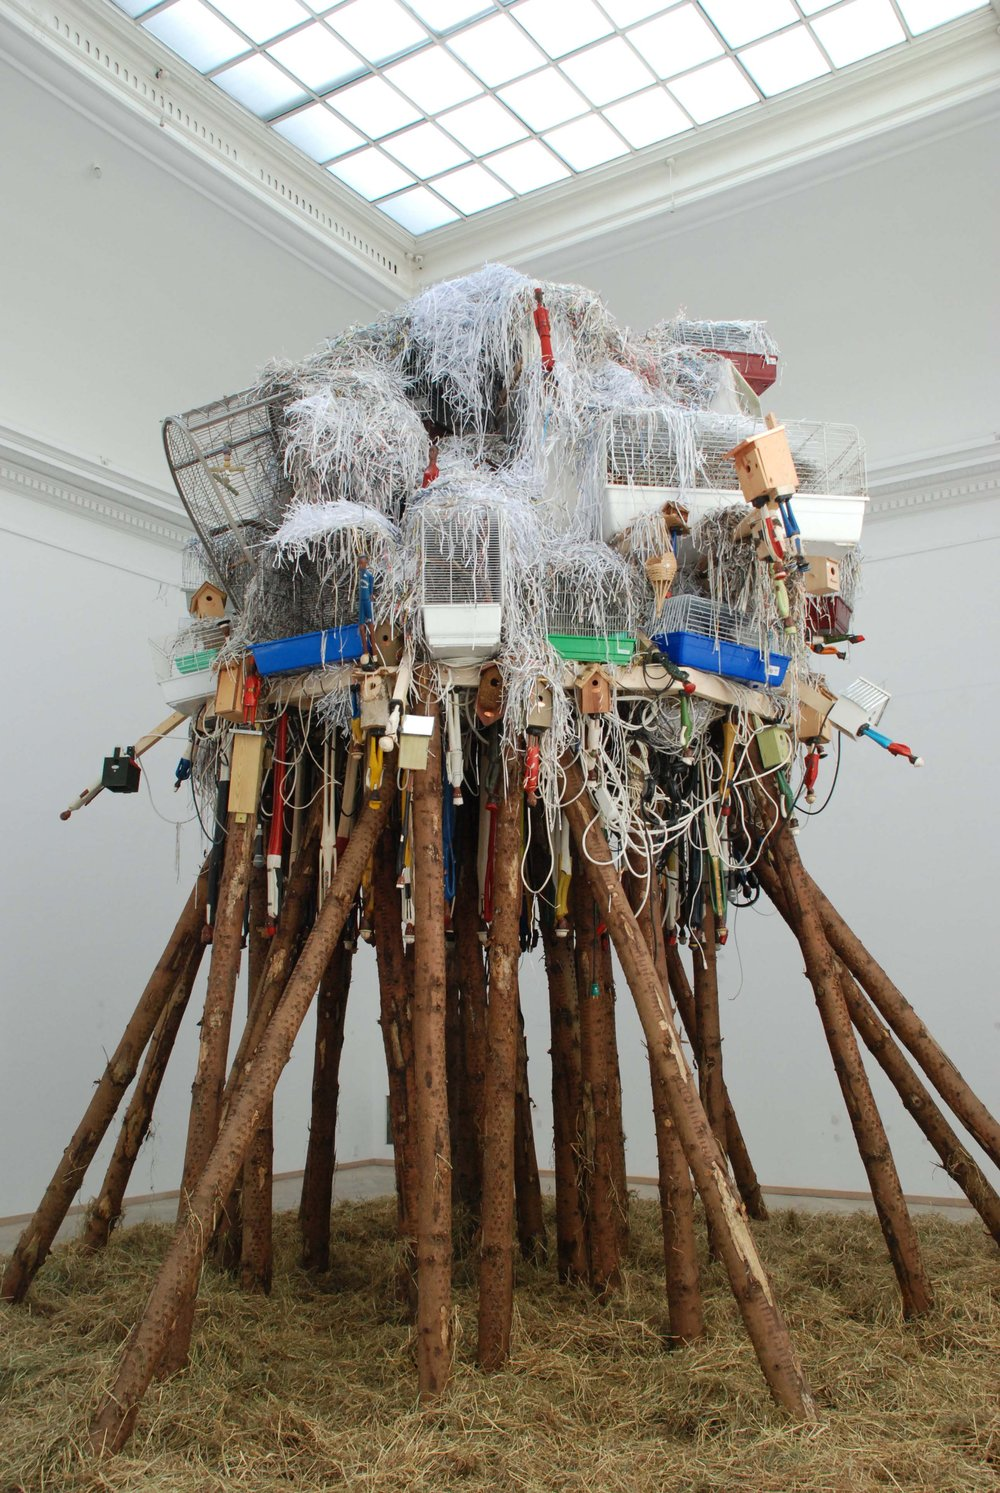 Make Yourself at Home, installation view, Home Sweet Home by Pascale Marthine Tayou, Kunsthal Charlottenborg, 2010